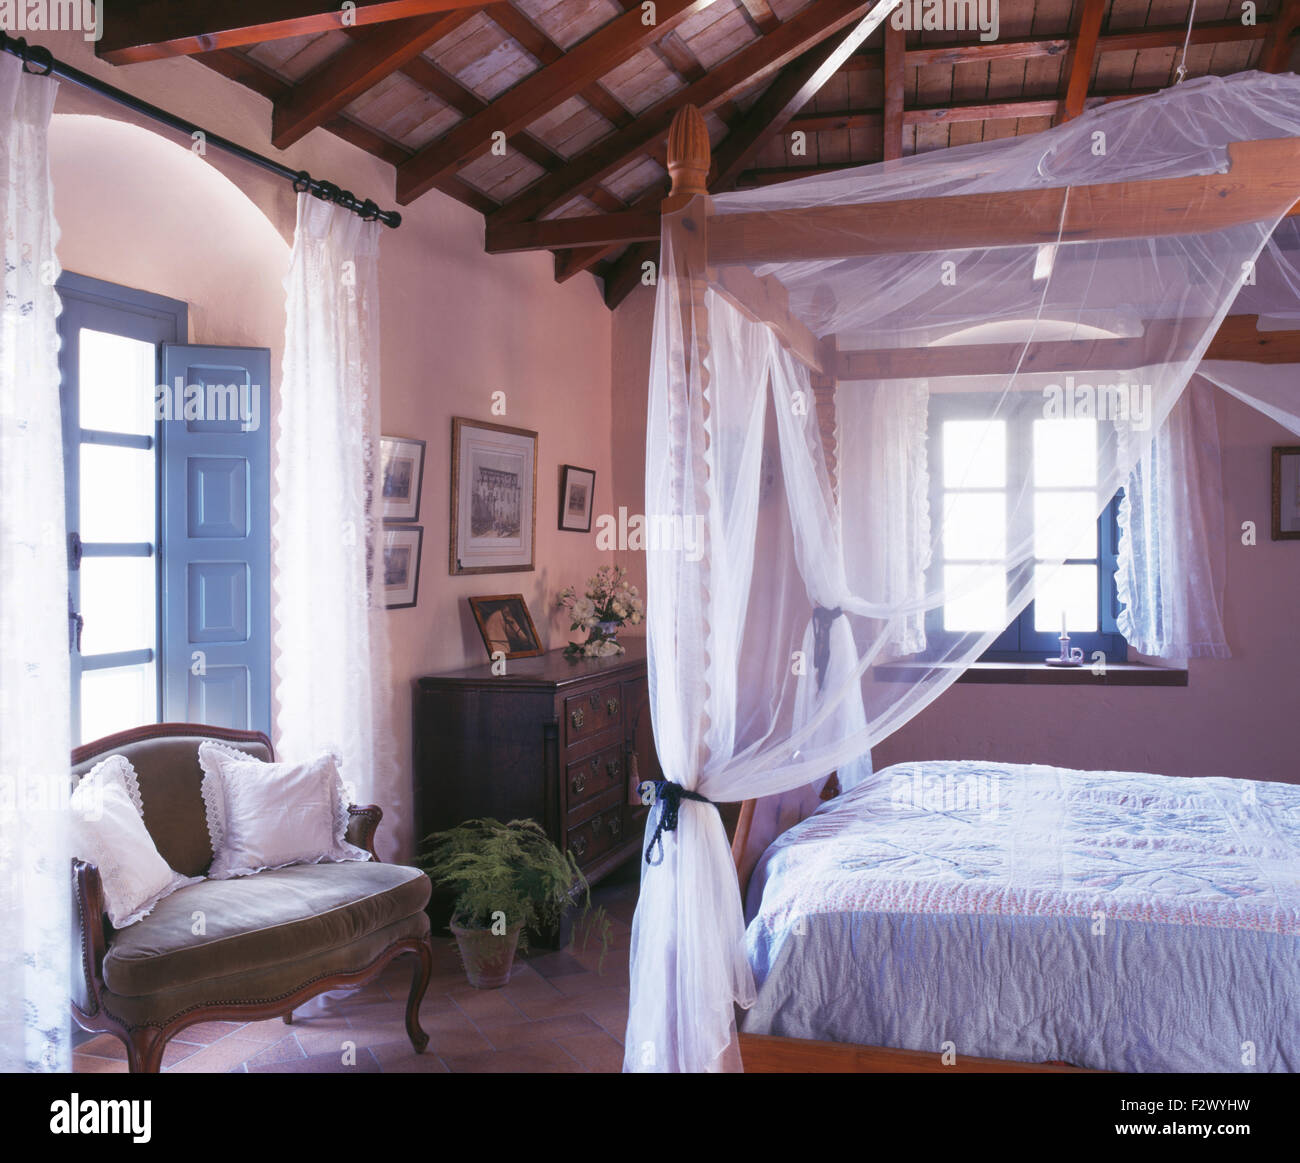 four poster bed with white mosquito net in rustic spanish country